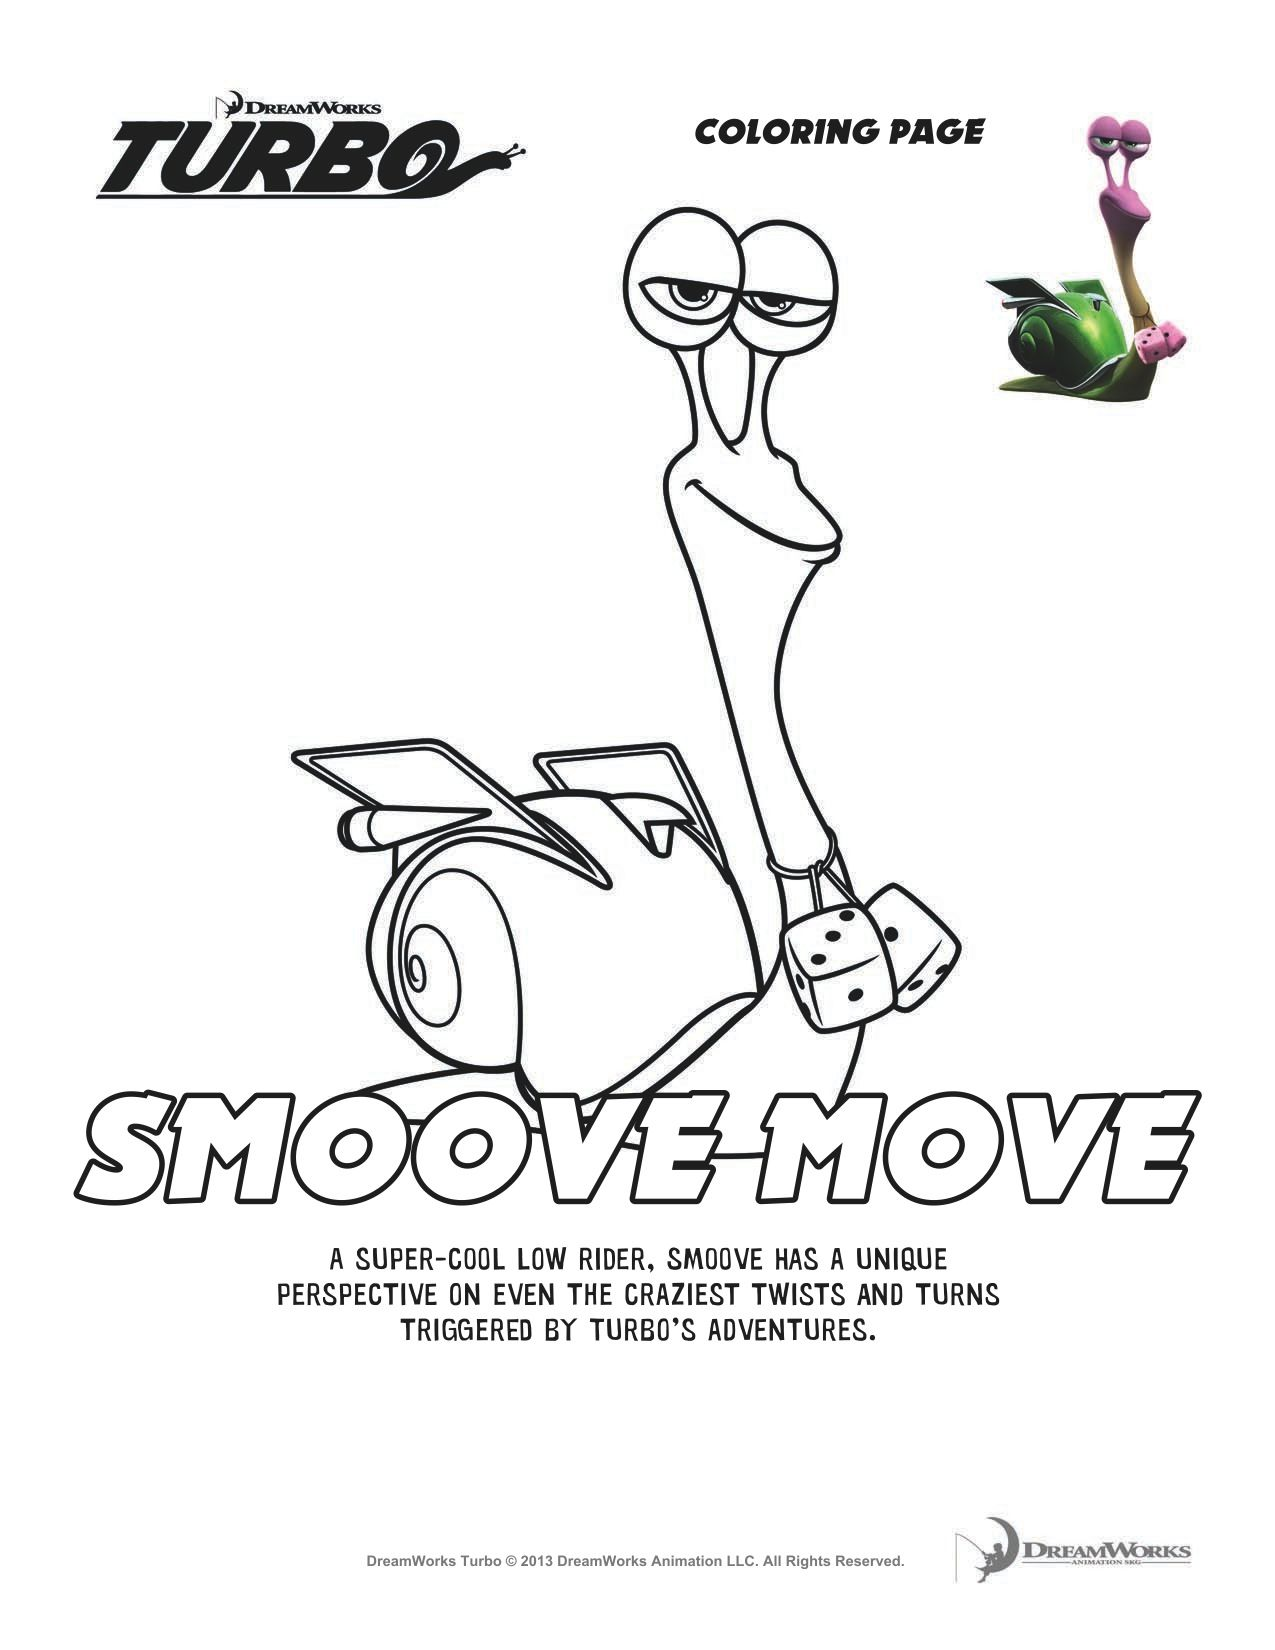 Turbo Smooth Move Coloring Sheet Coloring Pages Printable Coloring Pages Color By Numbers